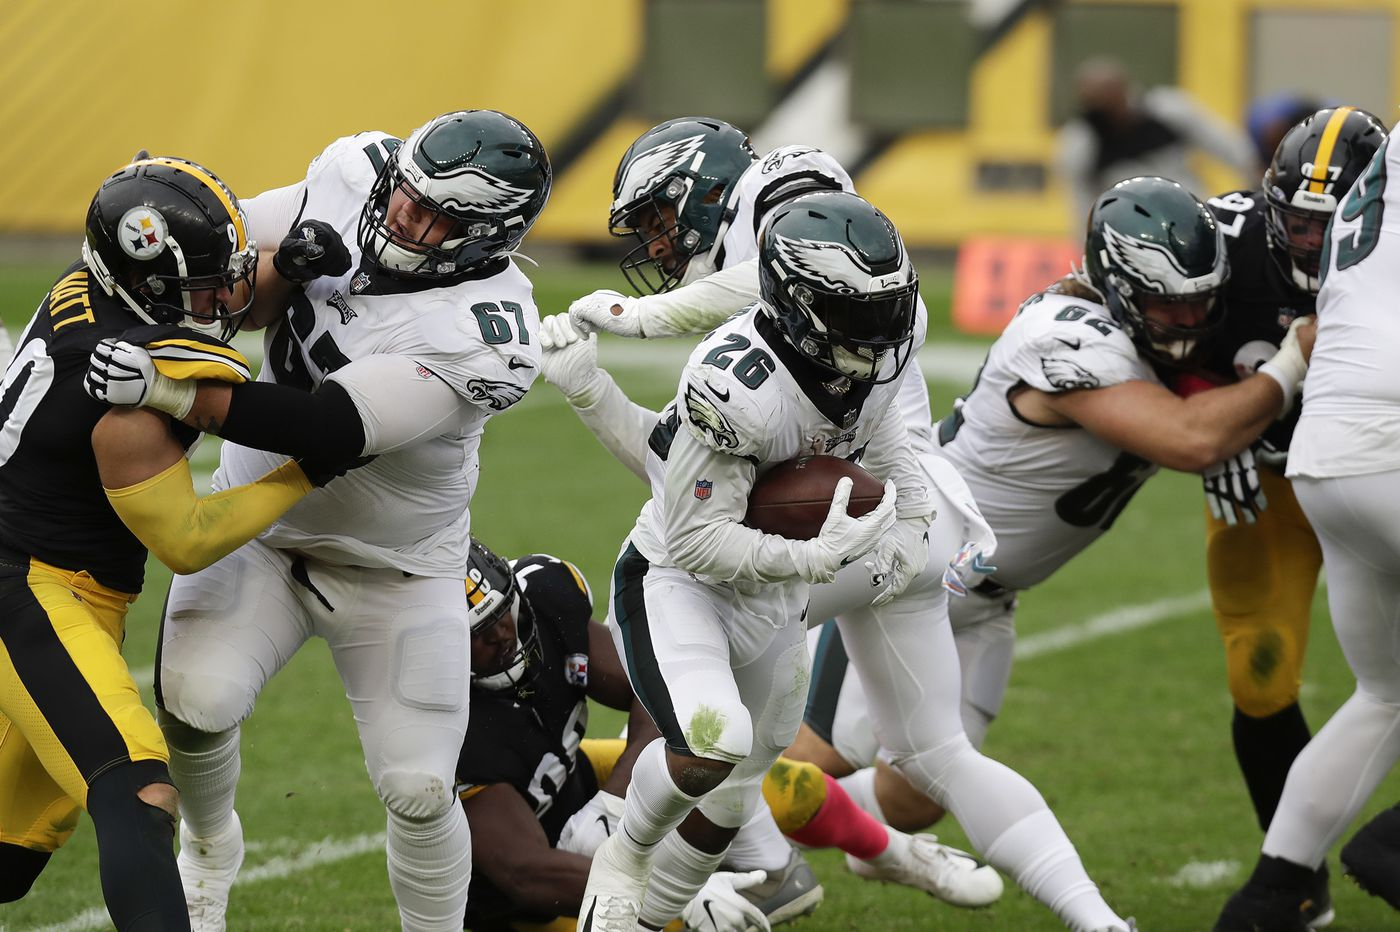 How the Eagles and Ravens match up, keys to the game, and a prediction